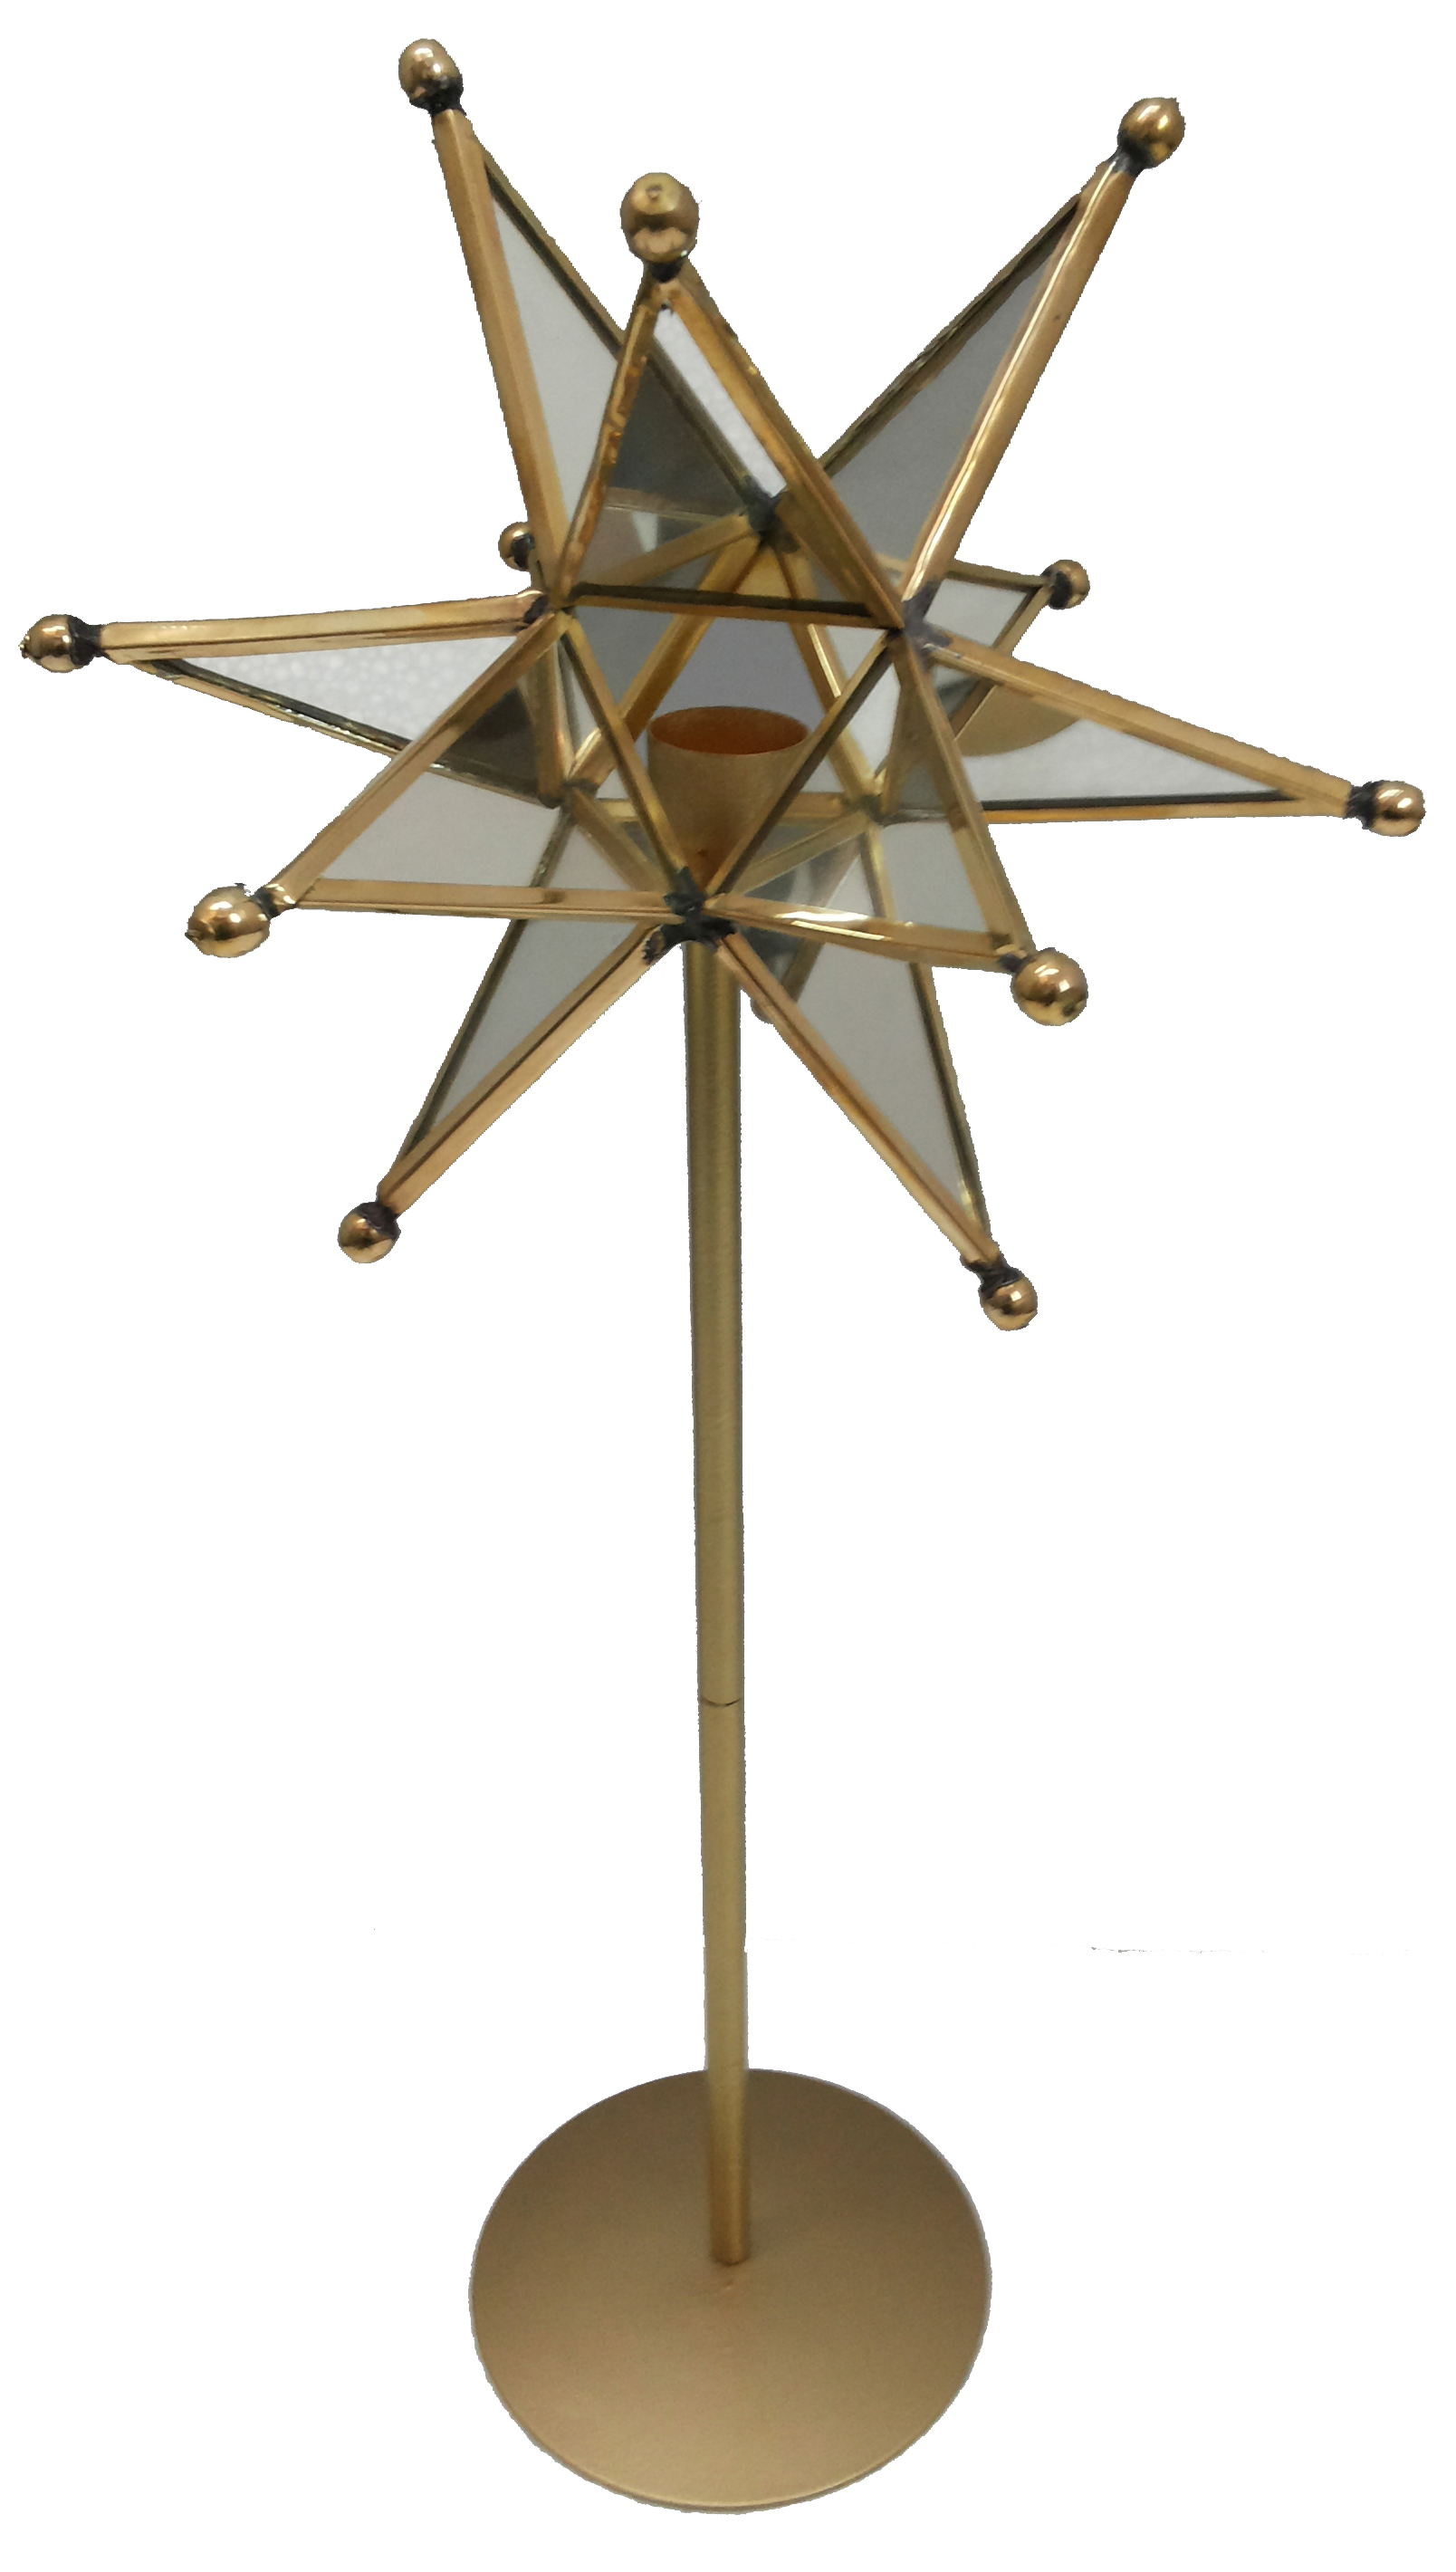 A&B Home Star Candle Holder On Stand, 7 x 4 x 17-Inch by A&B Home